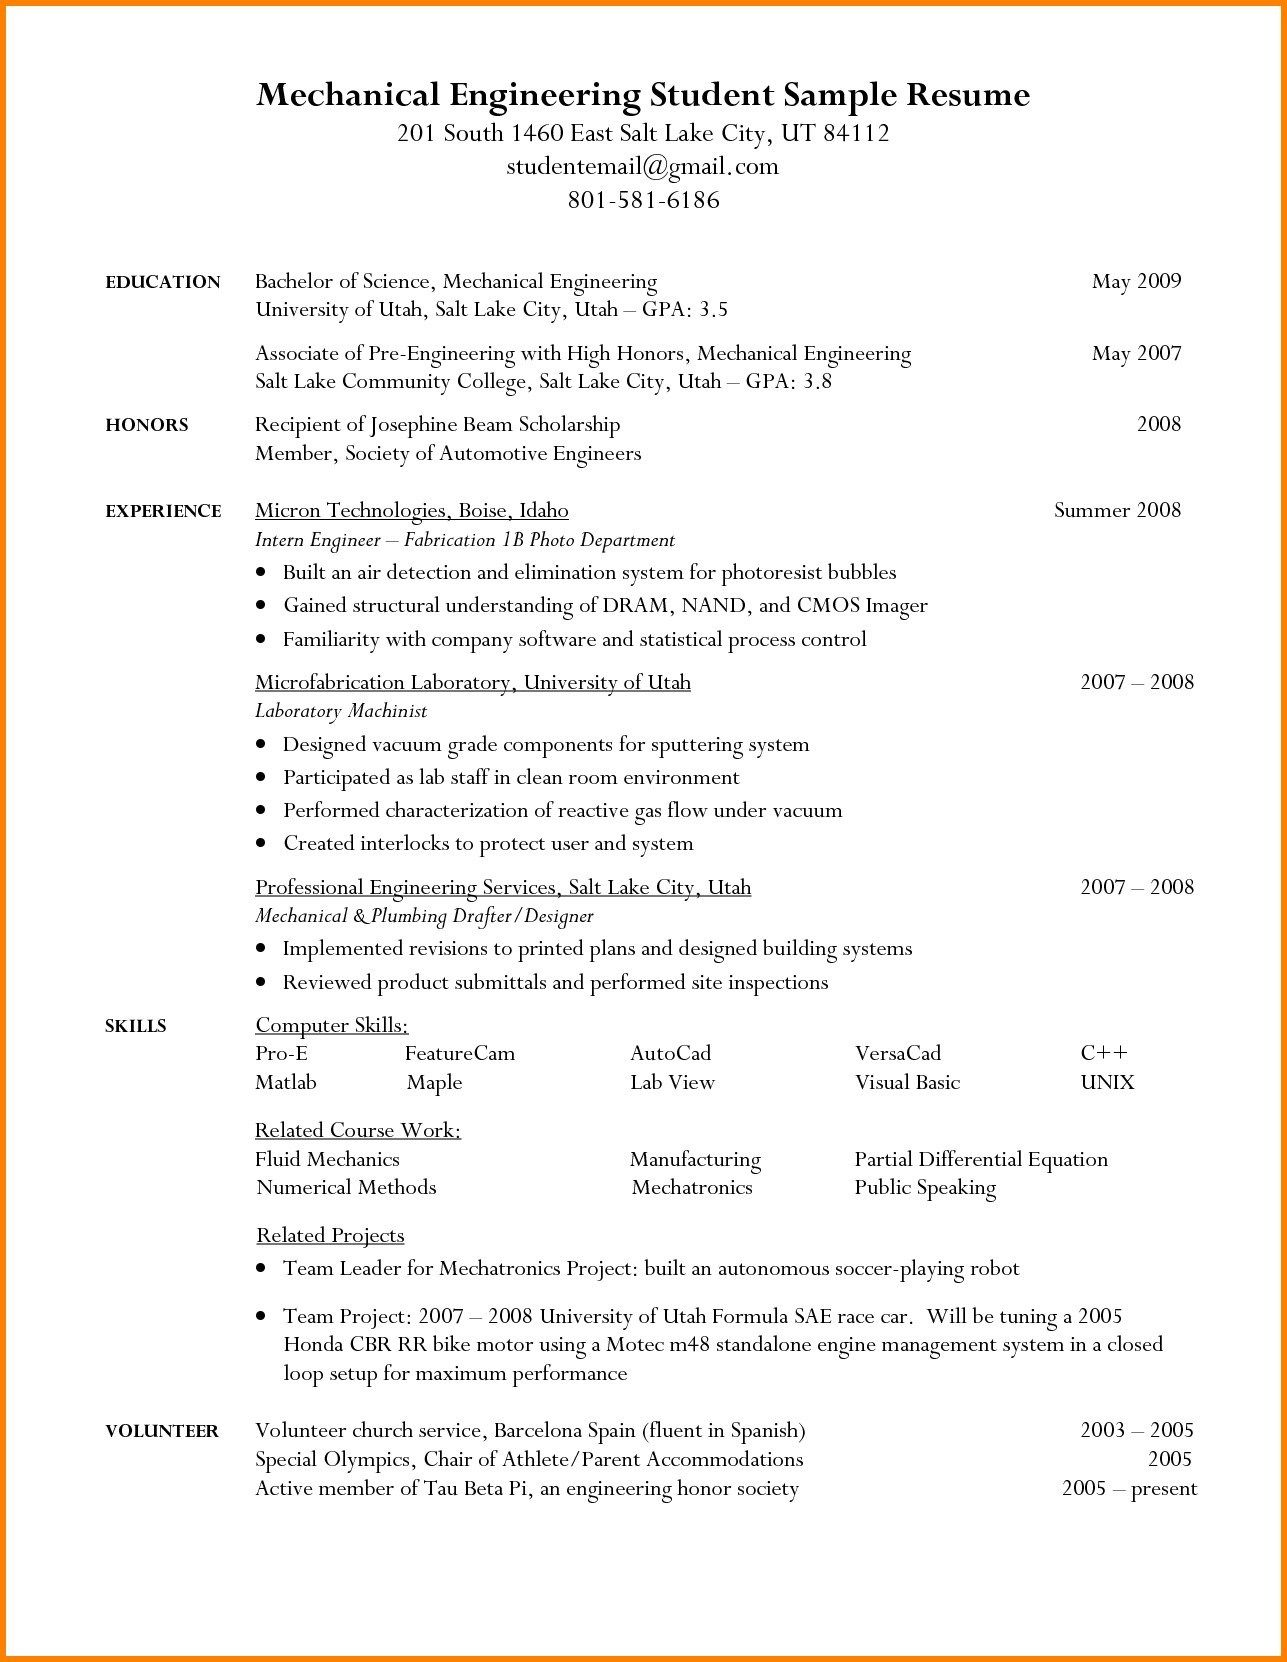 The student resume template is very helpful especially if